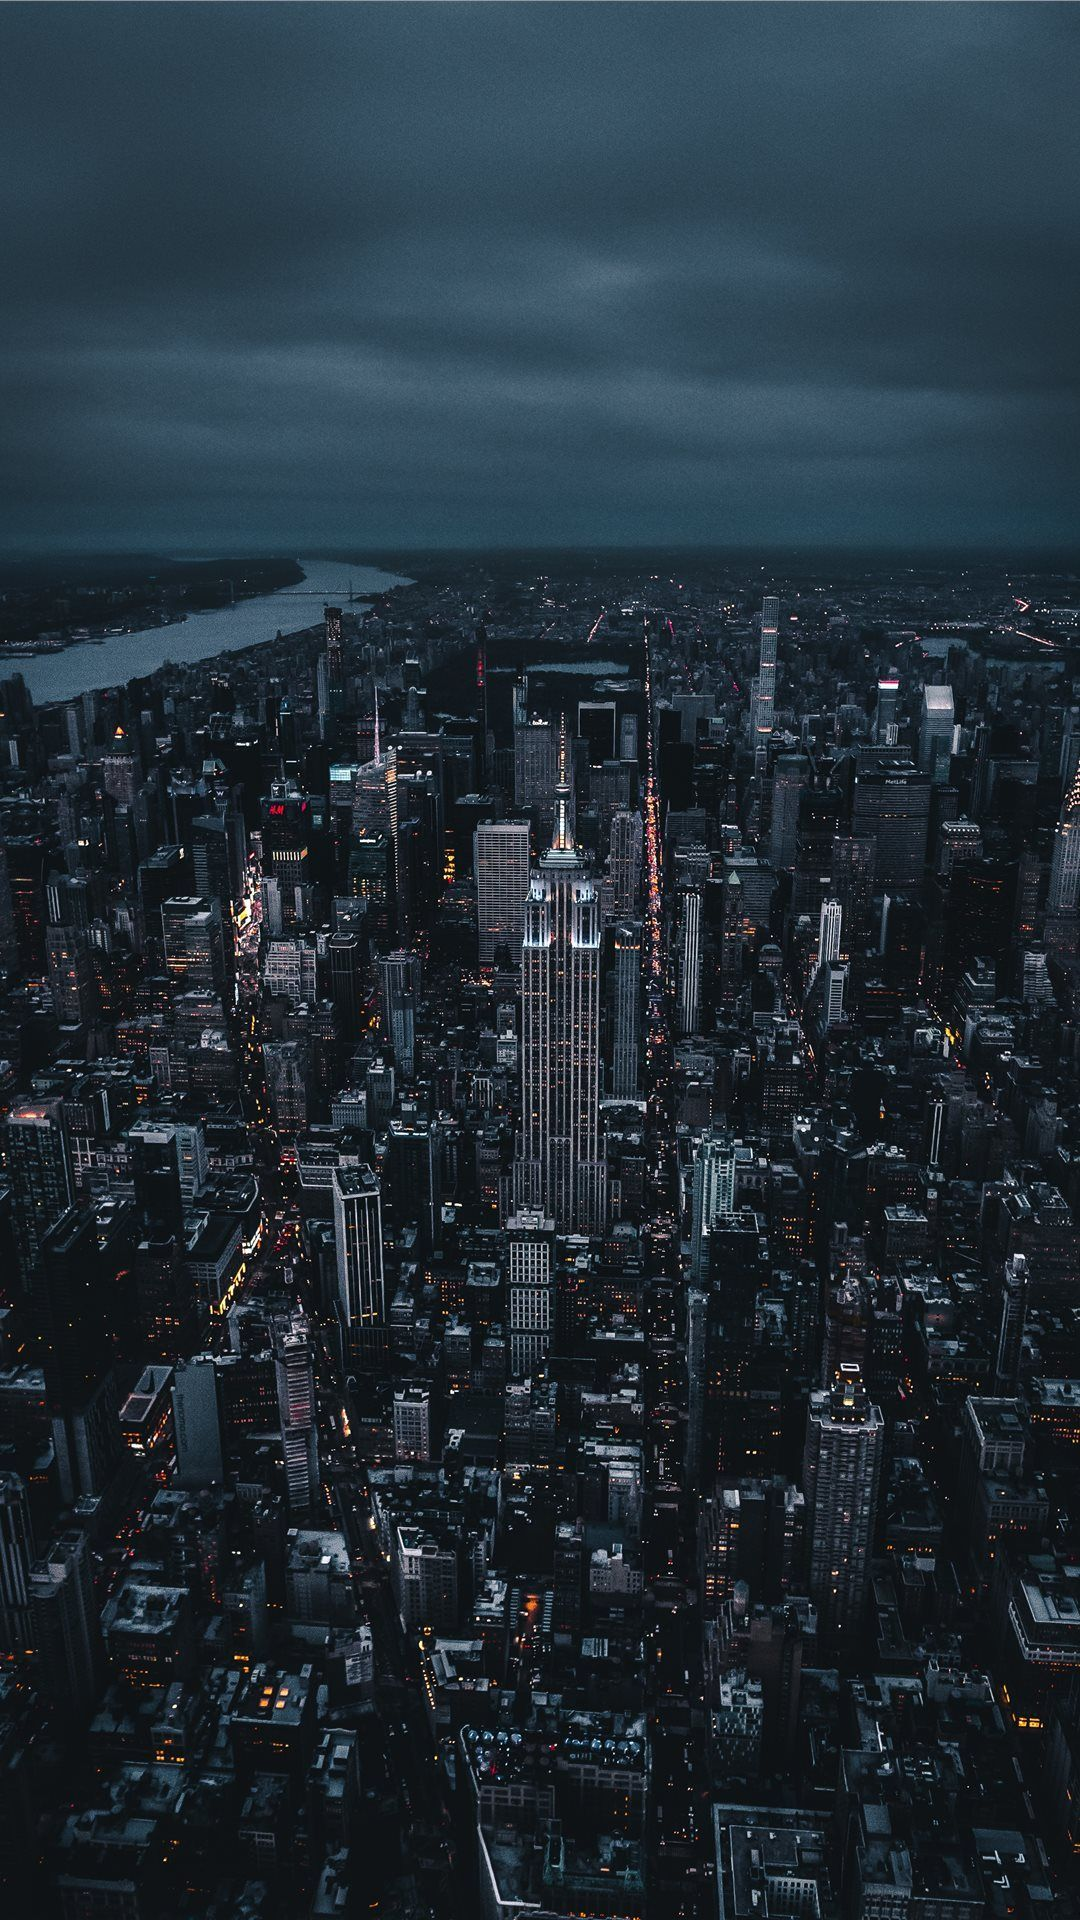 Empire State Building Iphone X Wallpaper Blackwallpaperiphone Empire State Building City Wallpaper New York Iphone Wallpaper Iphone Wallpaper Tumblr Aesthetic